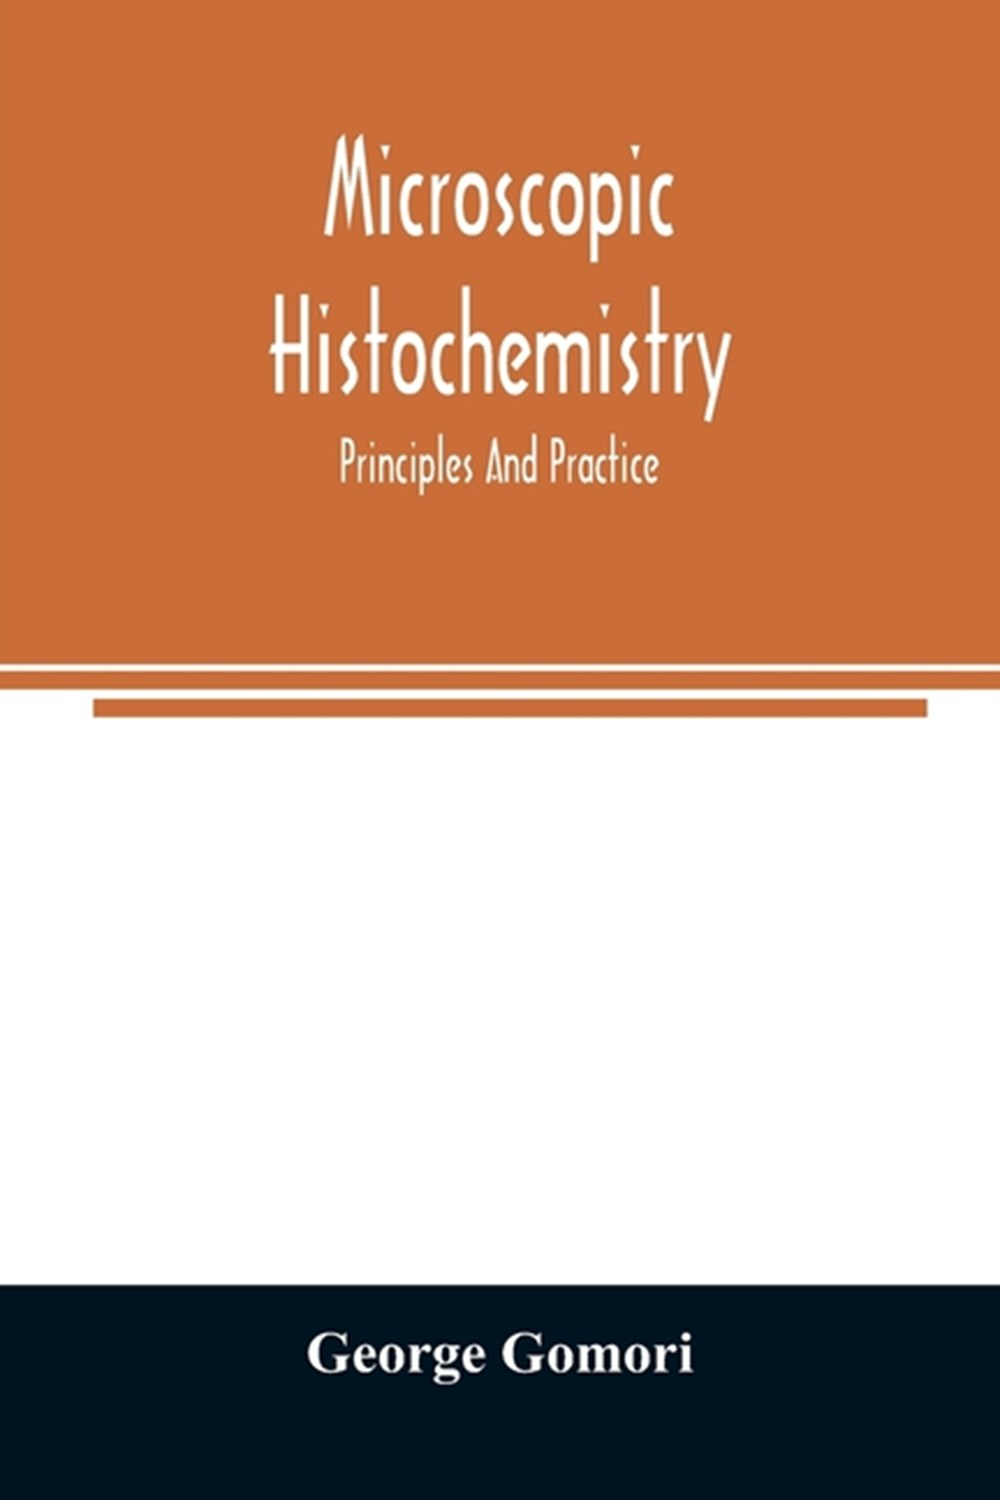 Microscopic histochemistry; principles and practice